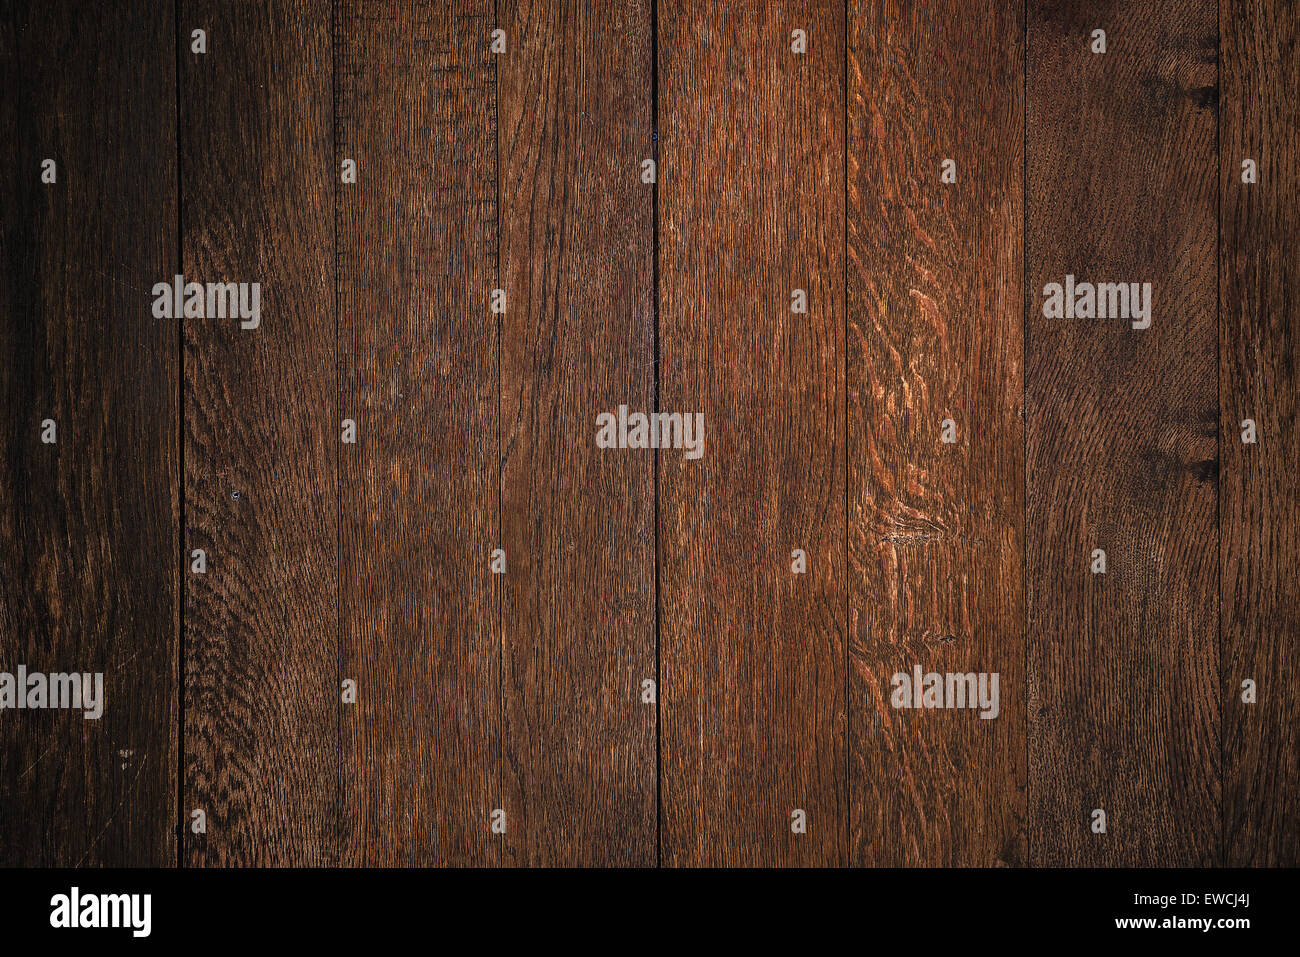 Brown Wood Planks Texture Pattern as Background - Stock Image